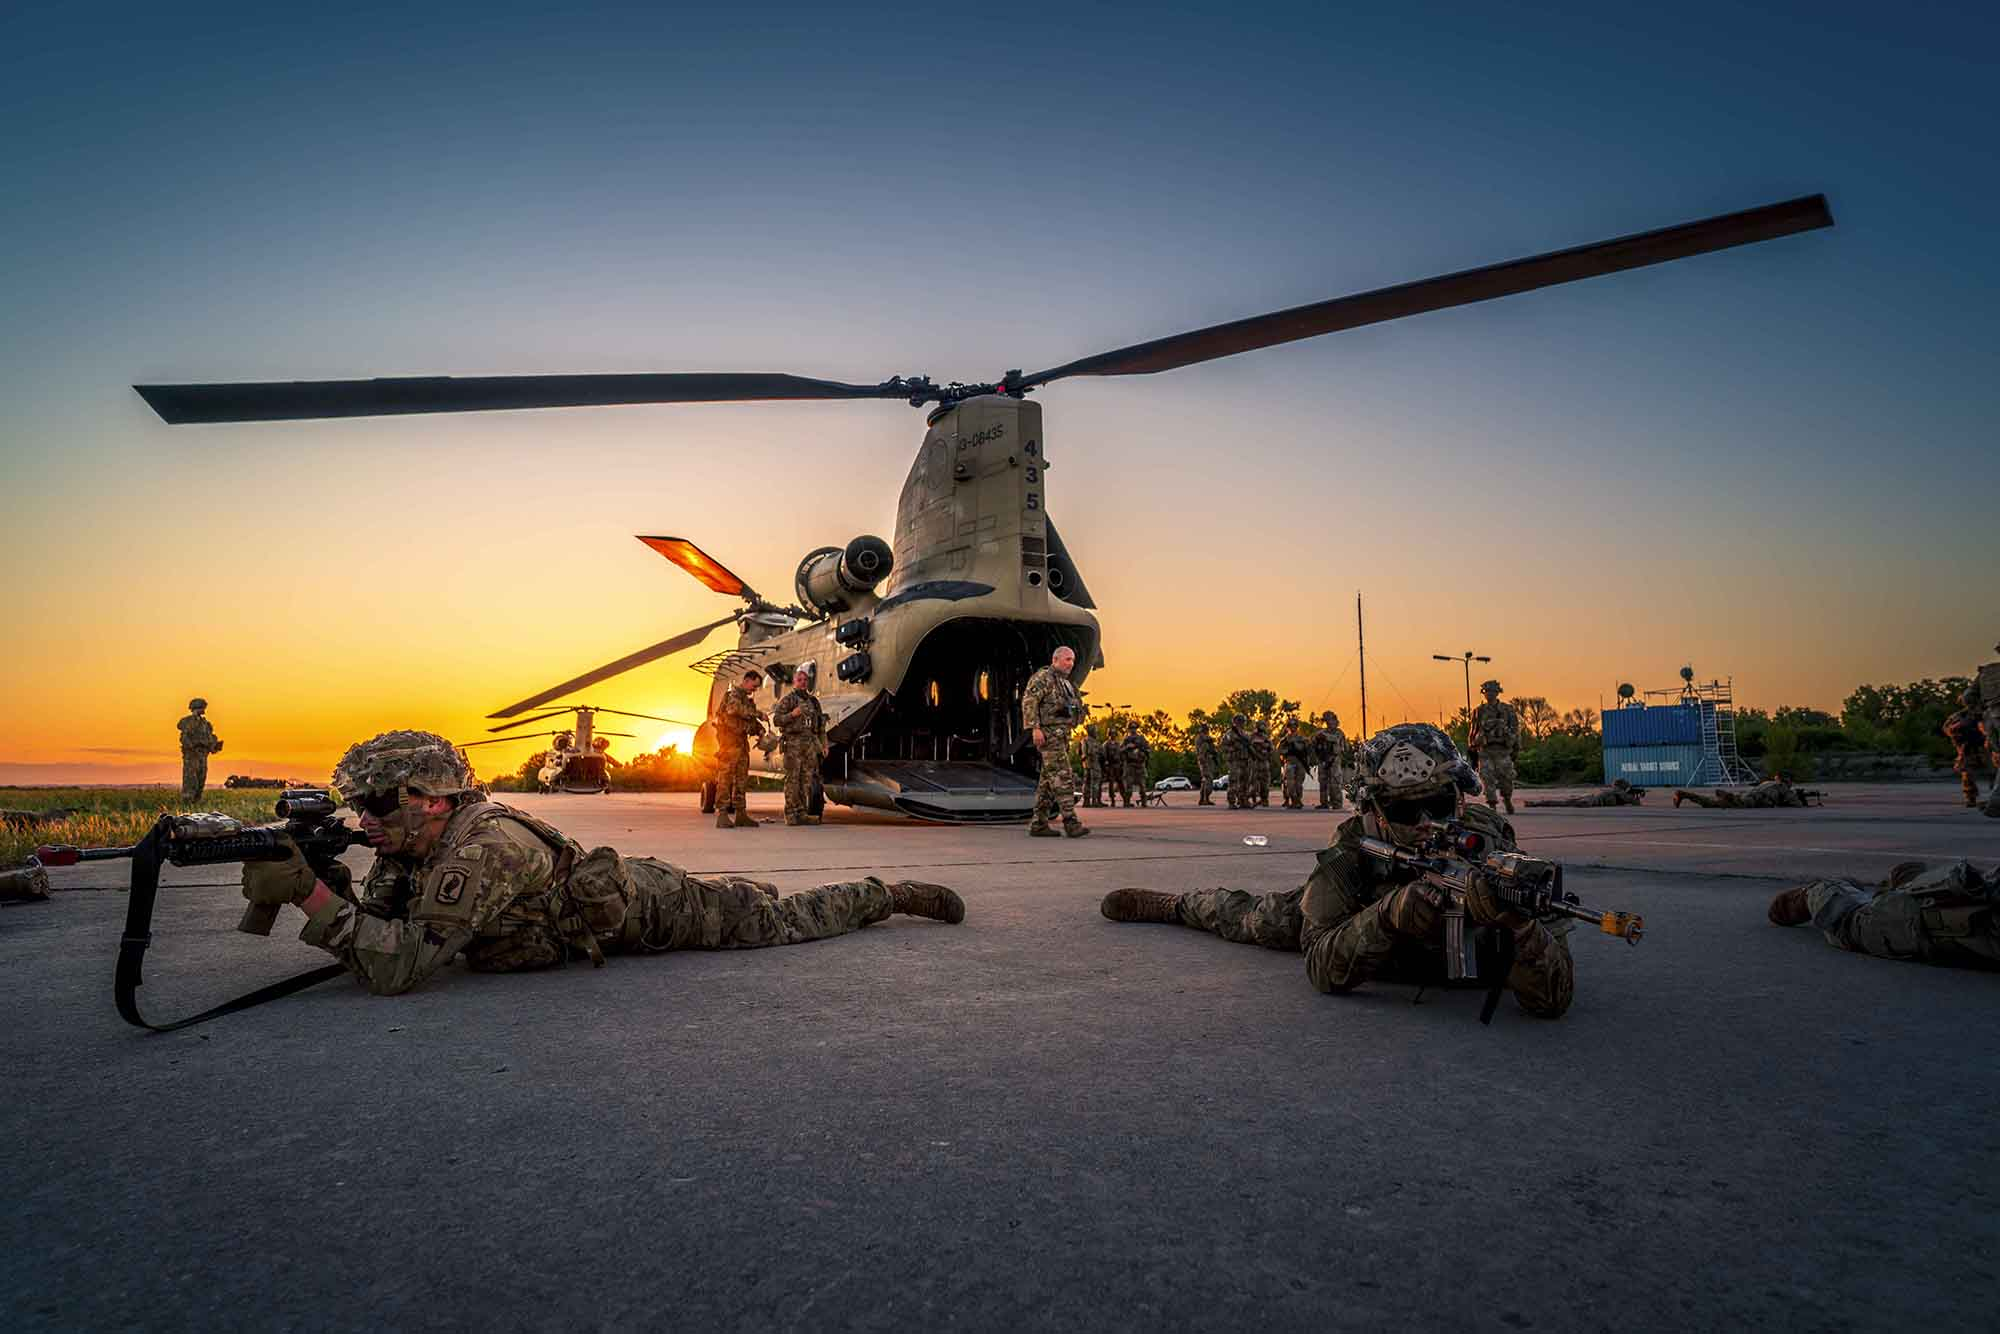 U.S. Army soldiers from the 173rd Airborne Brigade rehearse exiting CH-47 Chinooks of the 12th Combat Aviation Brigade in preparation for night air-assault missions during exercise Swift Response 21, part of the DEFENDER-Europe 21 series of exercises at Chech Airfield, Bulgaria, on May 11, 2021. (Maj. Robert Fellingham/U.S. Army)